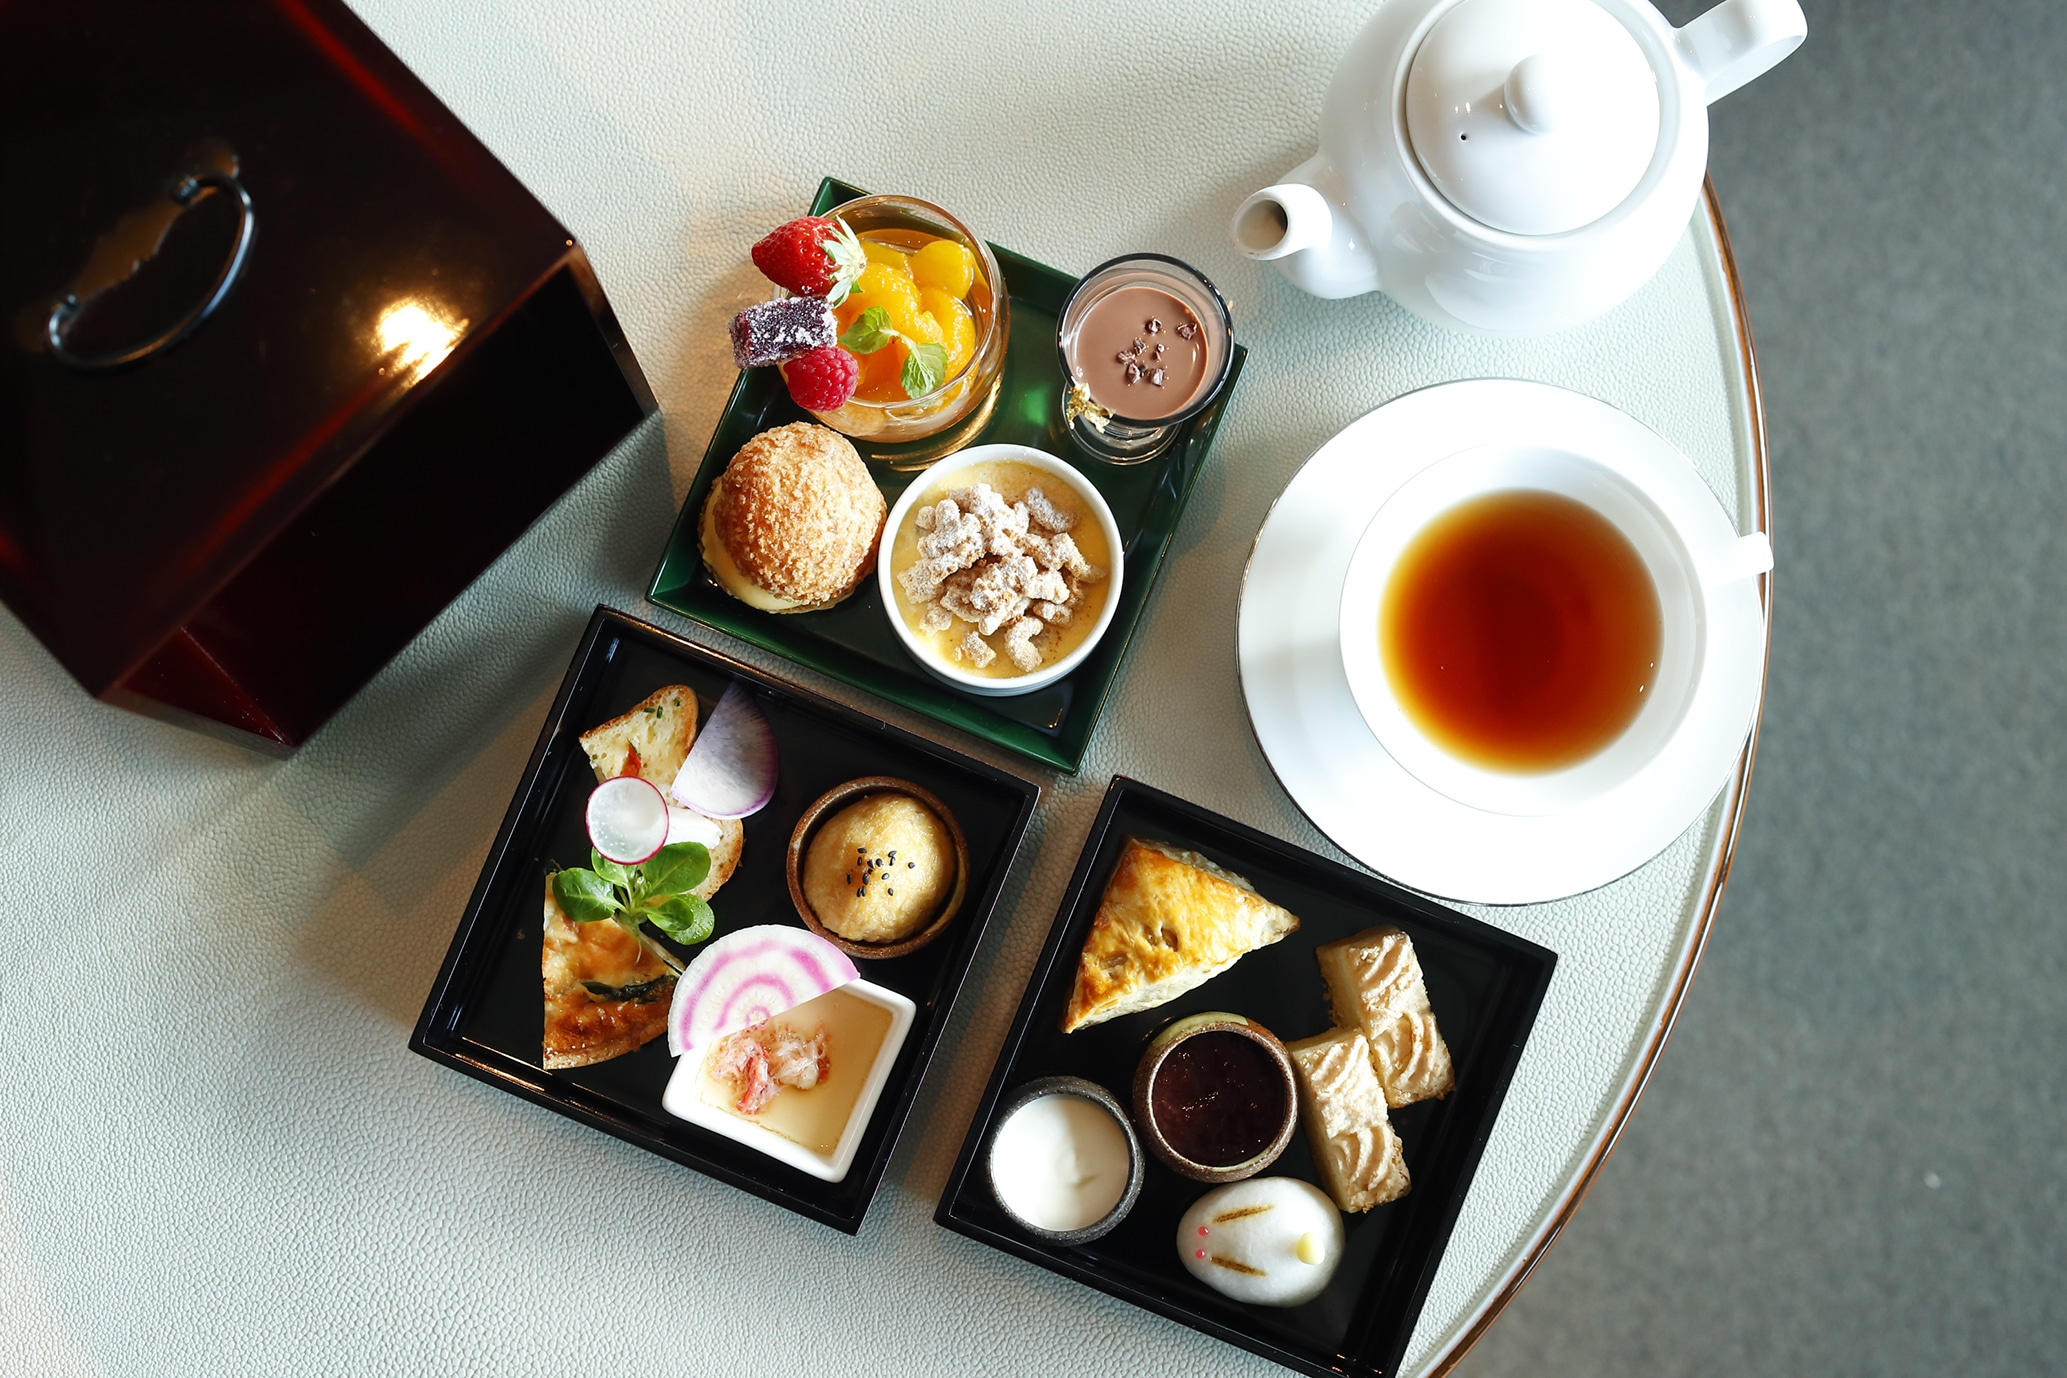 Palace Hotel Tokyo – The Palace Lounge's Winter 2017-2018 Afternoon Tea